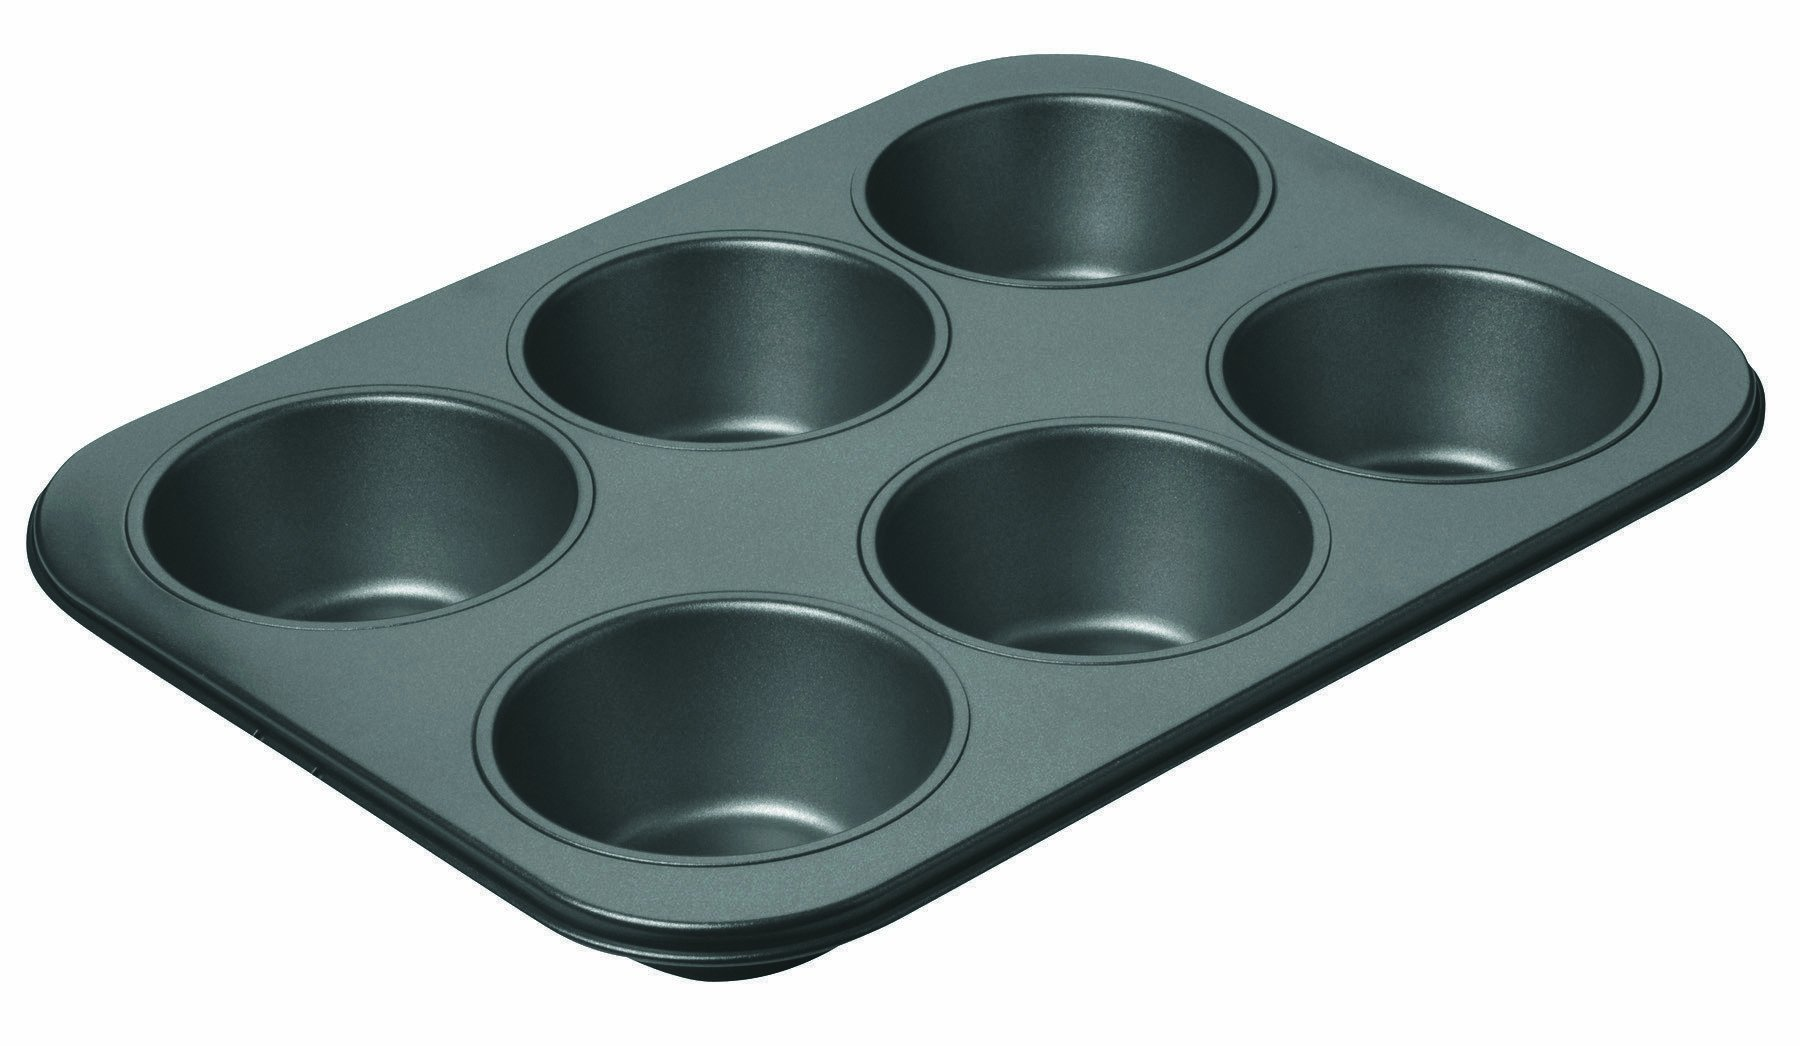 Chicago Metallic Professional 6-Cup Non-Stick Muffin Pan, 14-Inch-by-10.25-Inch